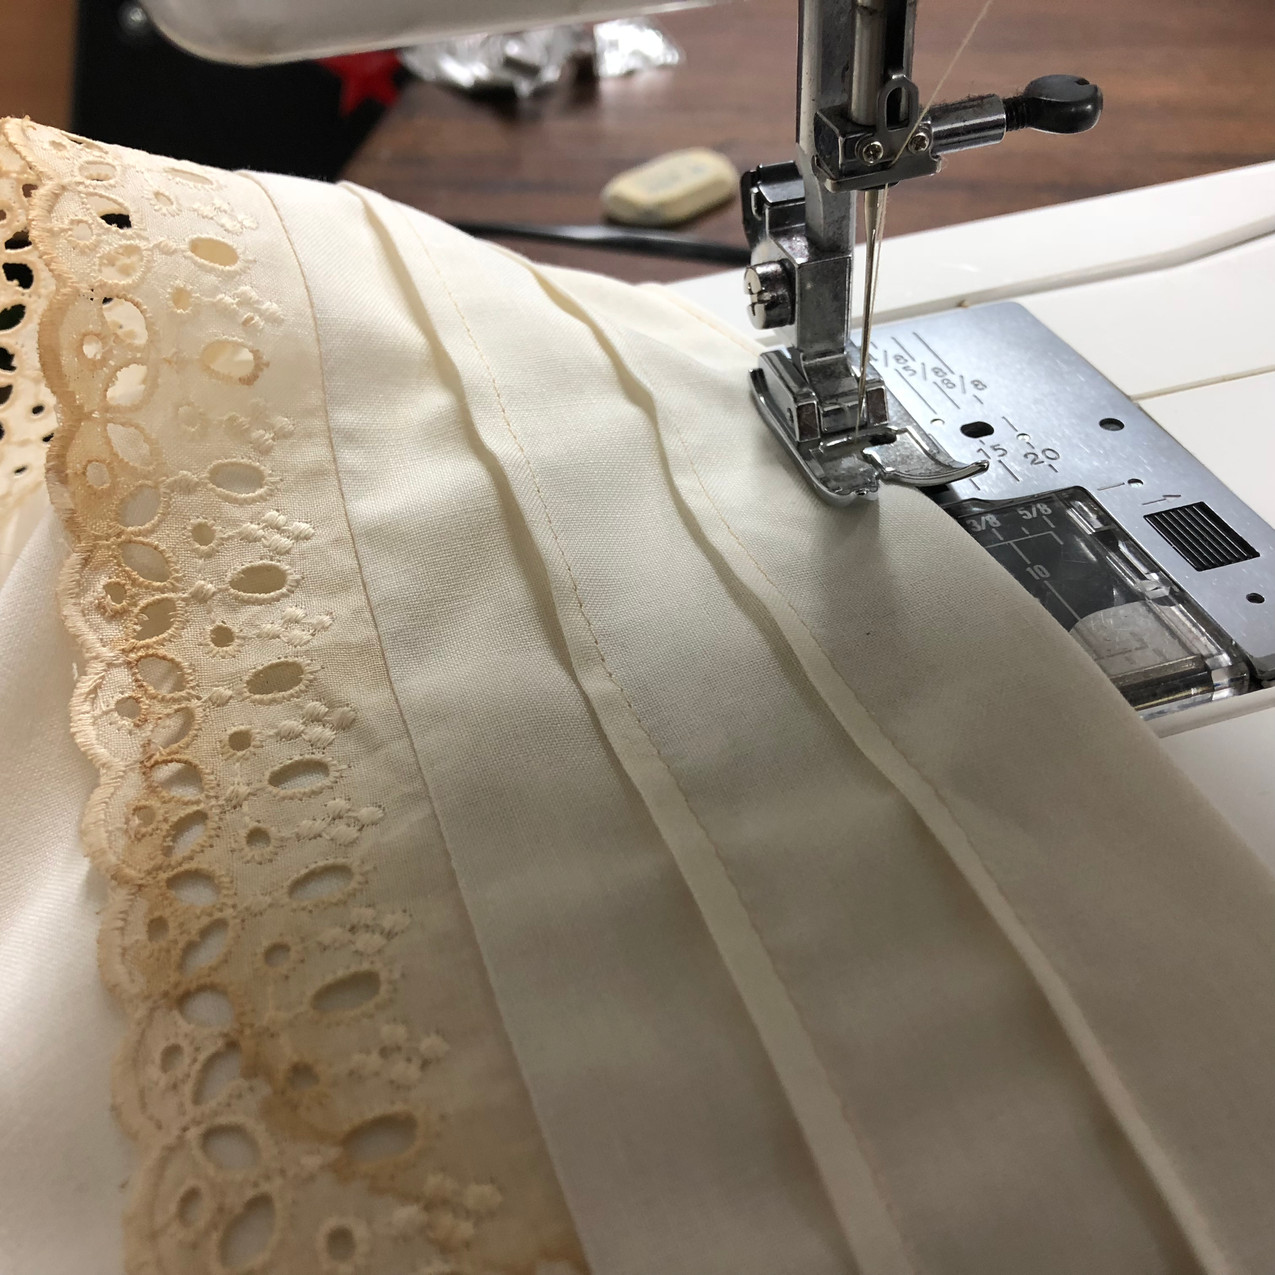 Sonia Richter sewing